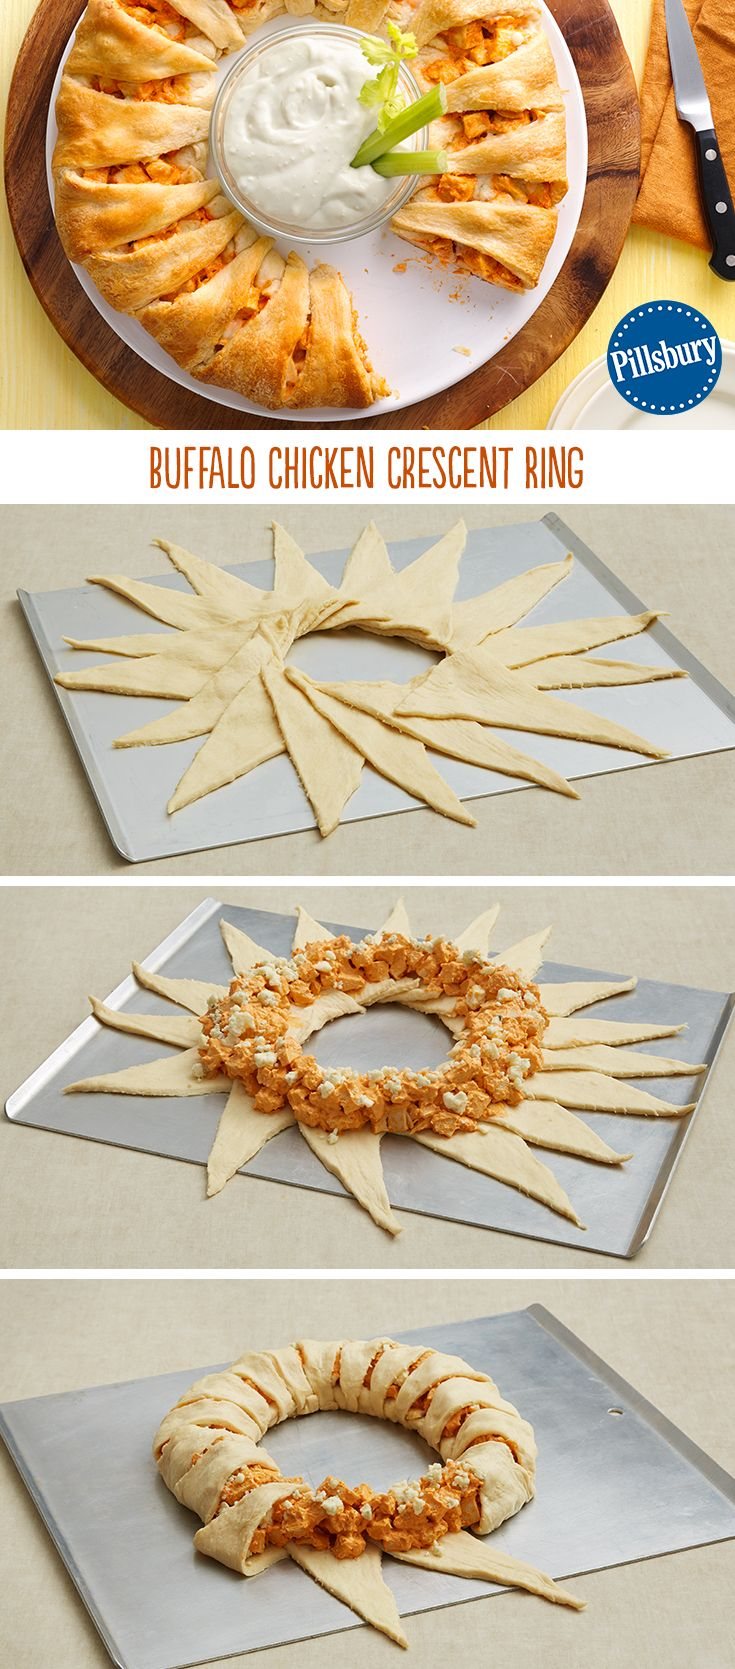 Serve up a crowd-pleaser with this Buffalo Chicken Crescent Ring!